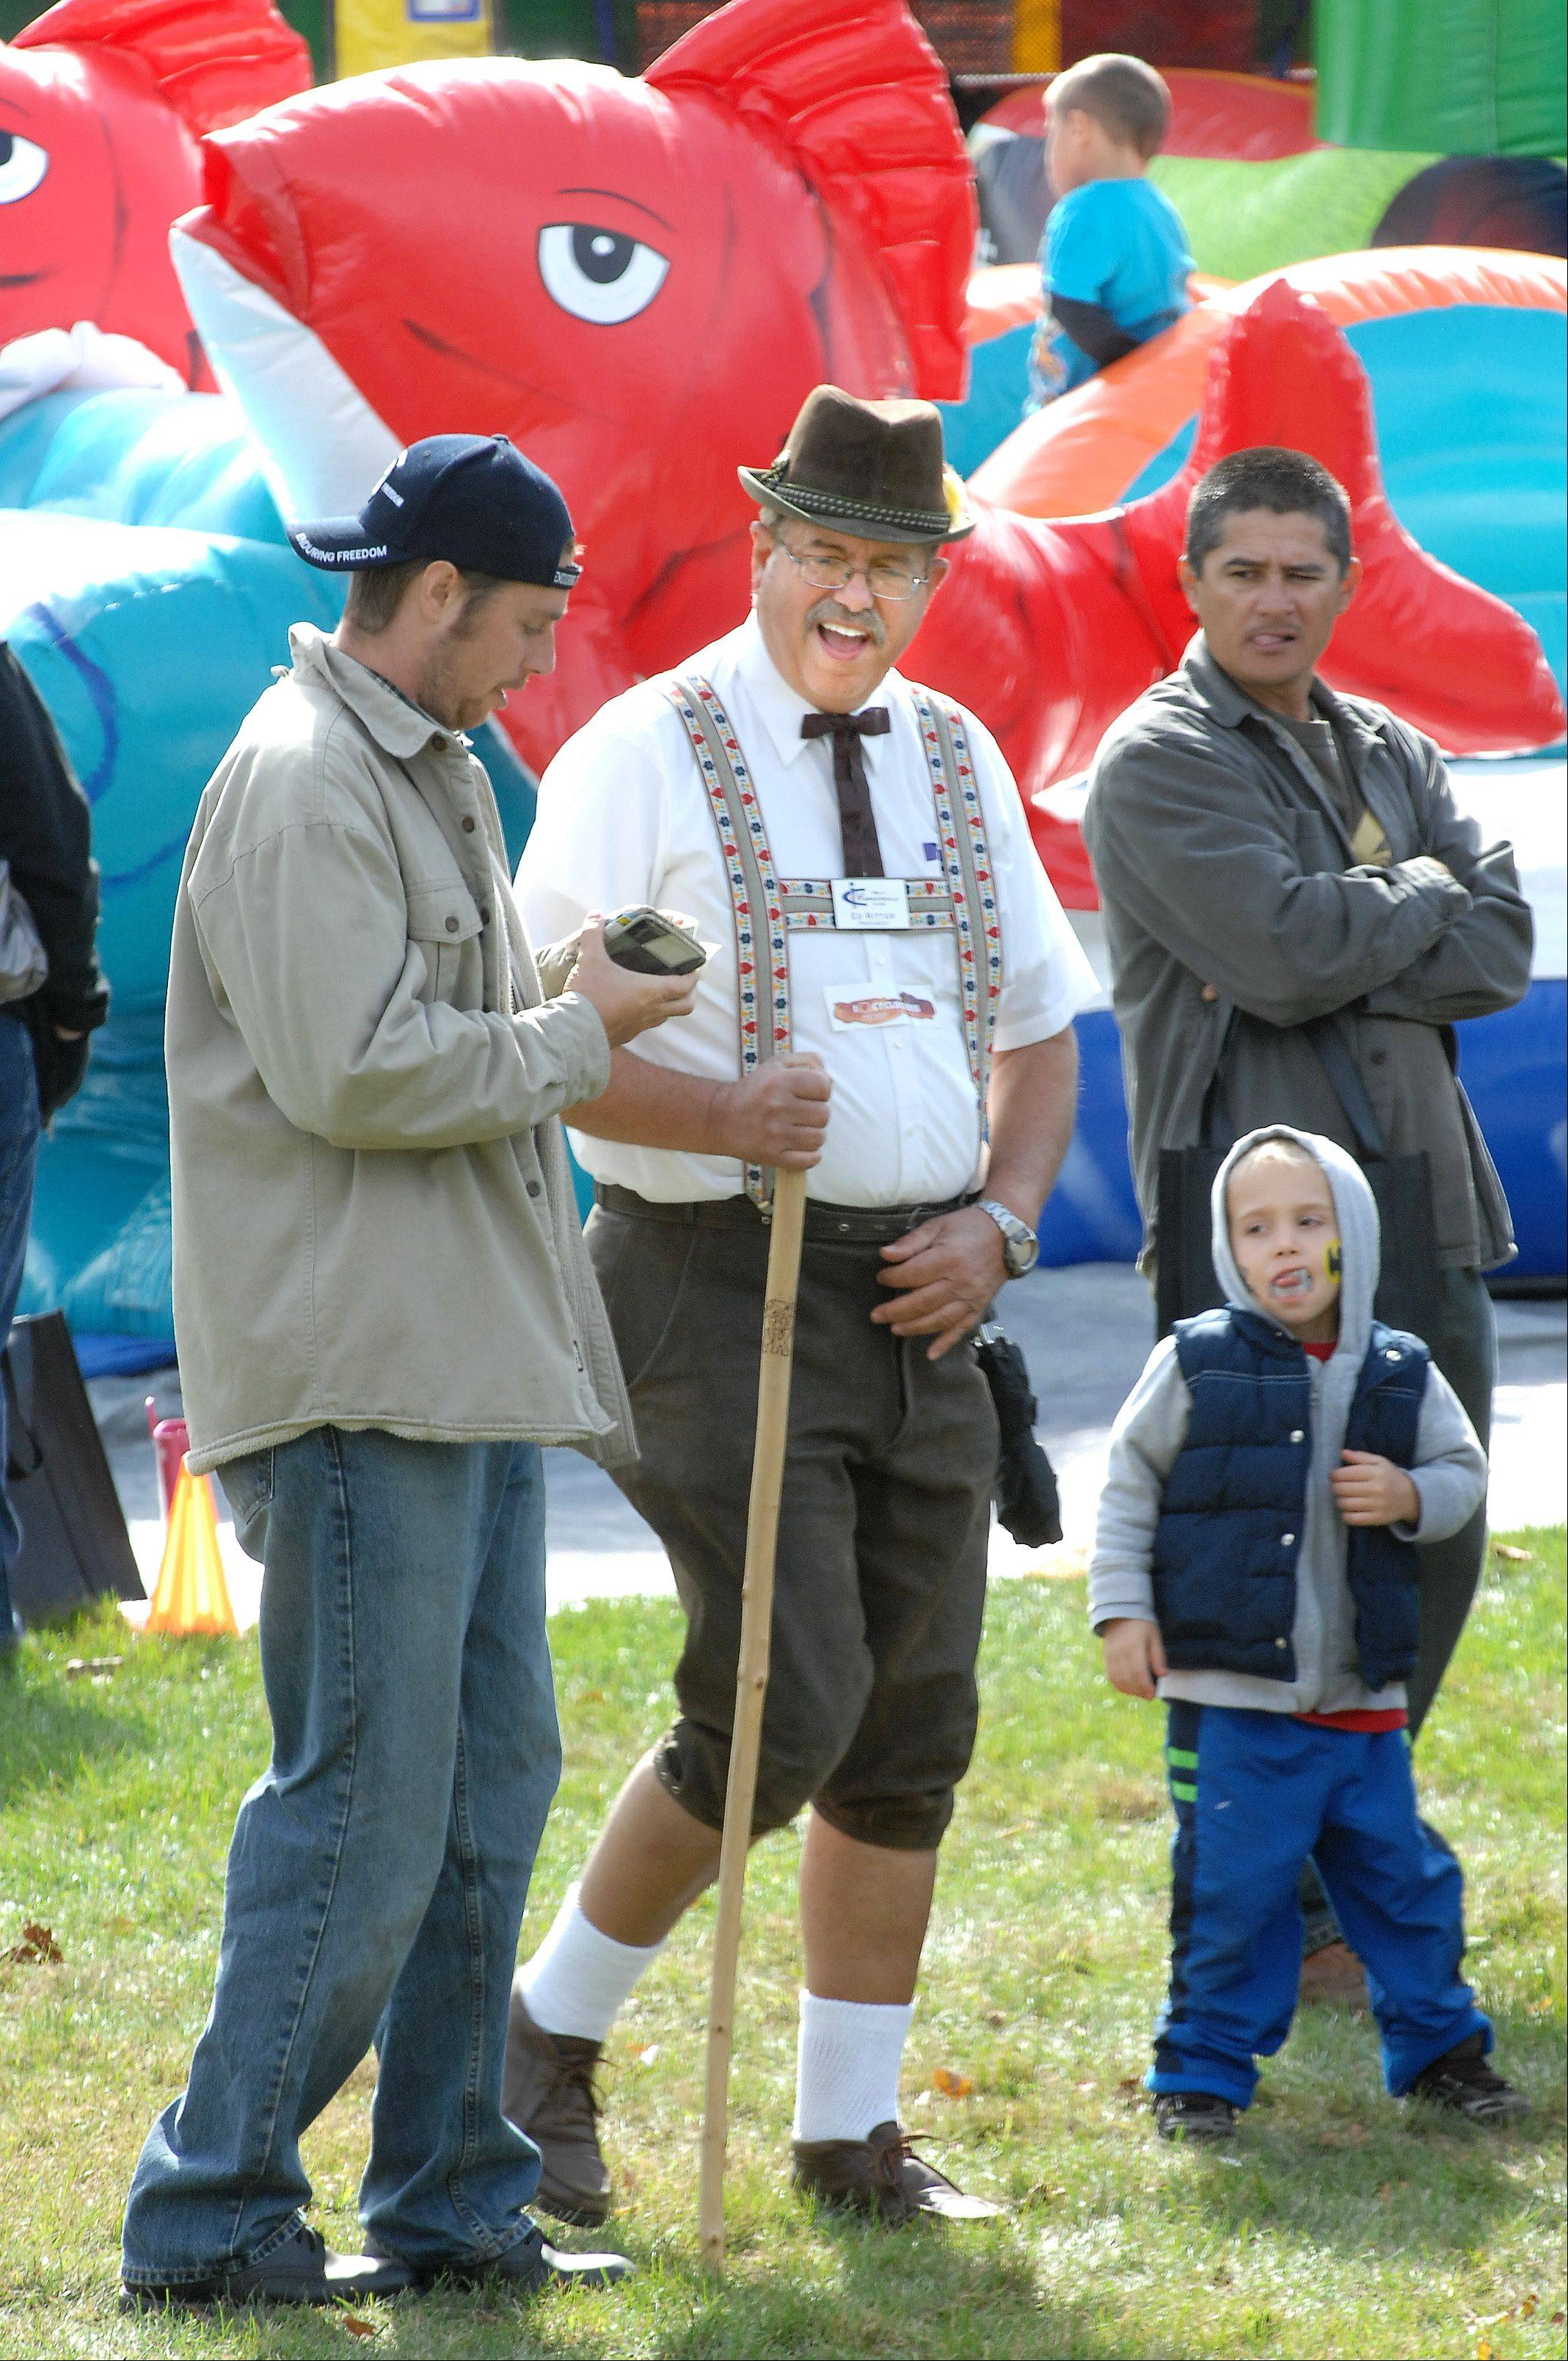 Carpentersville Village President Ed Ritter walks in the crowd wearing traditional Bavarian lederhosen during the 2011 Oktoberfest in Carpenter Park.